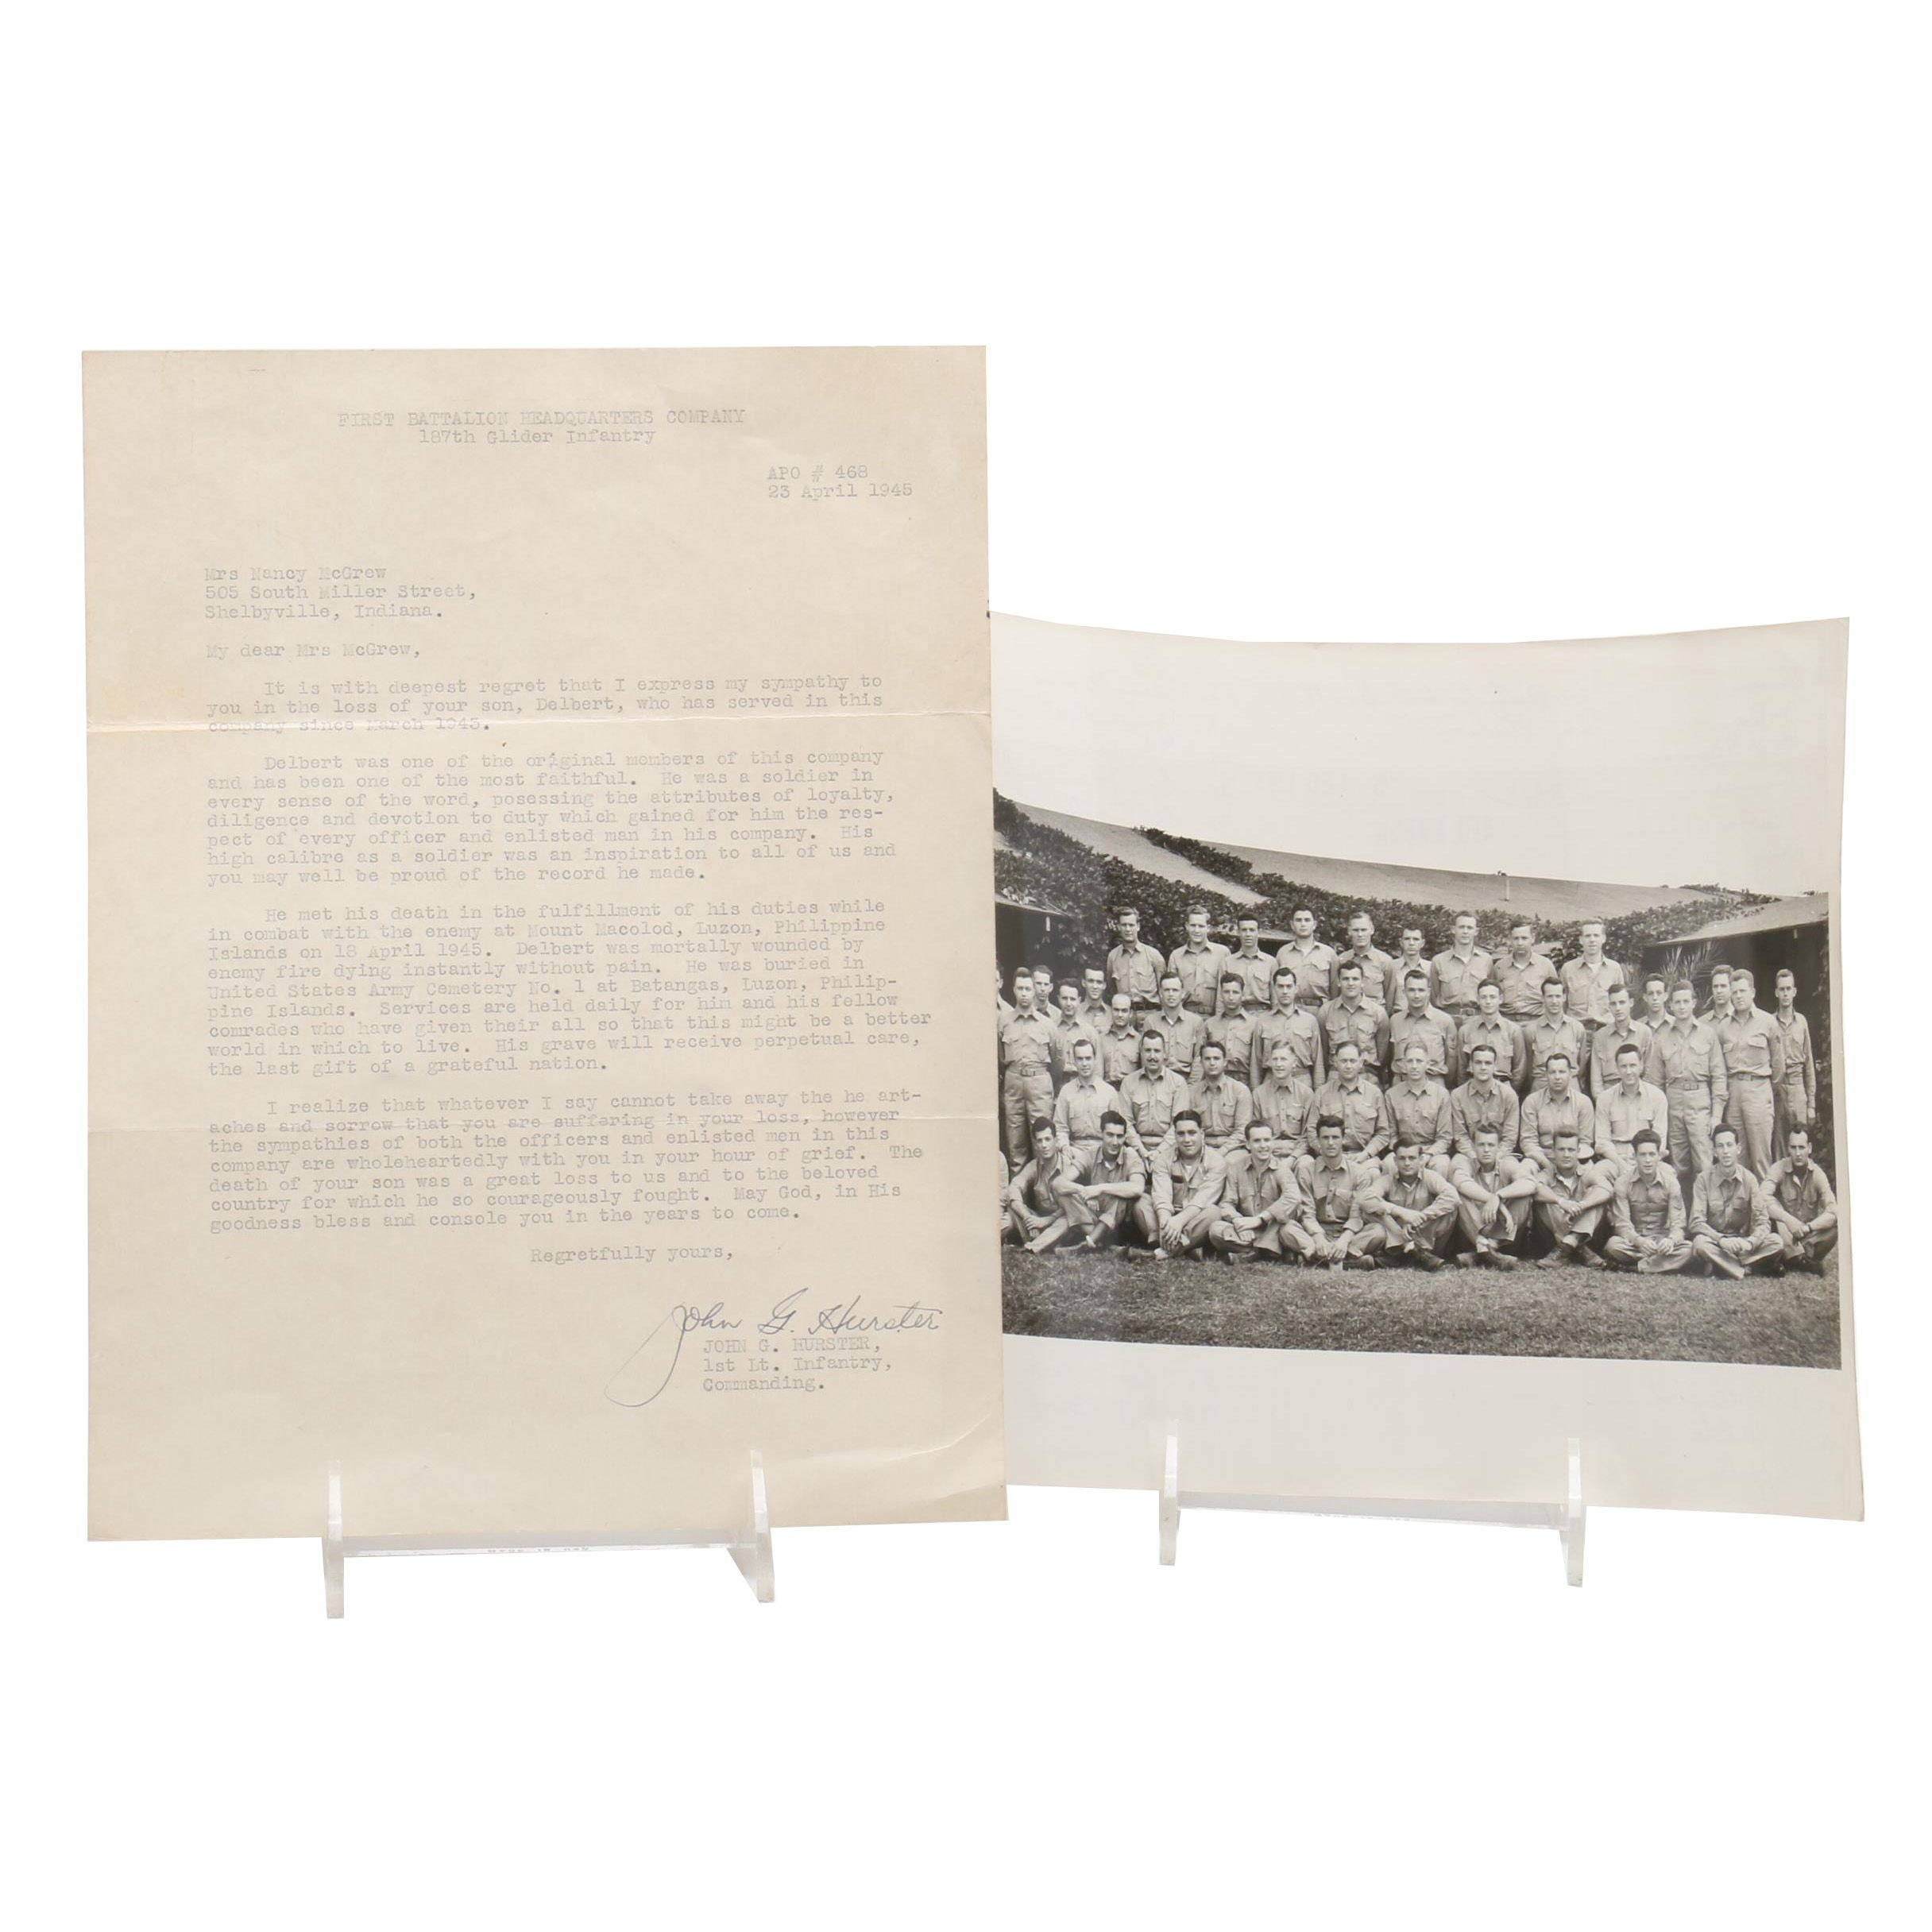 WWII John G. Hurster Infantry Commander Signed Letter and Unit Squad Photograph